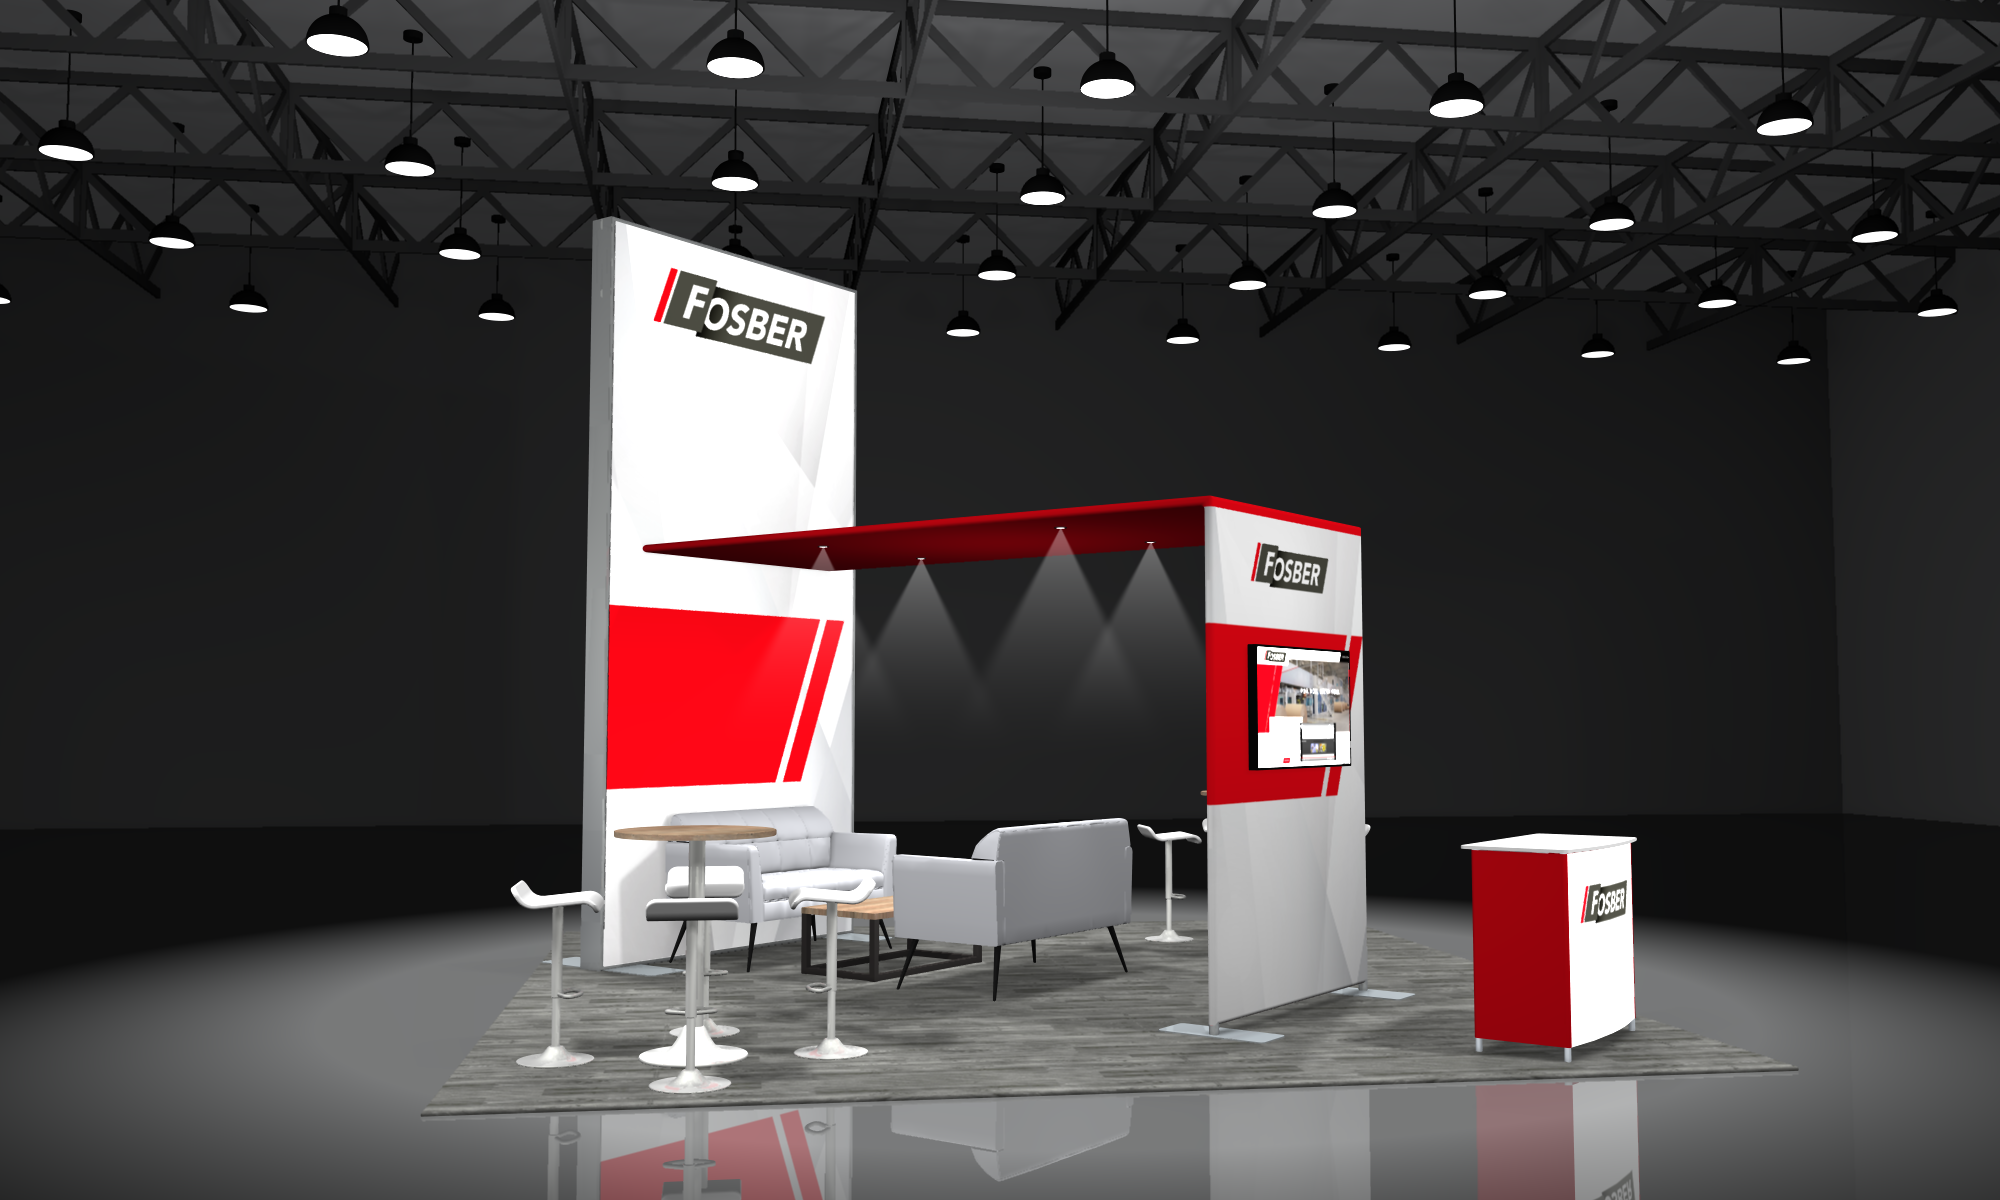 modular 20x20 booth converts to 10x20 trade show display